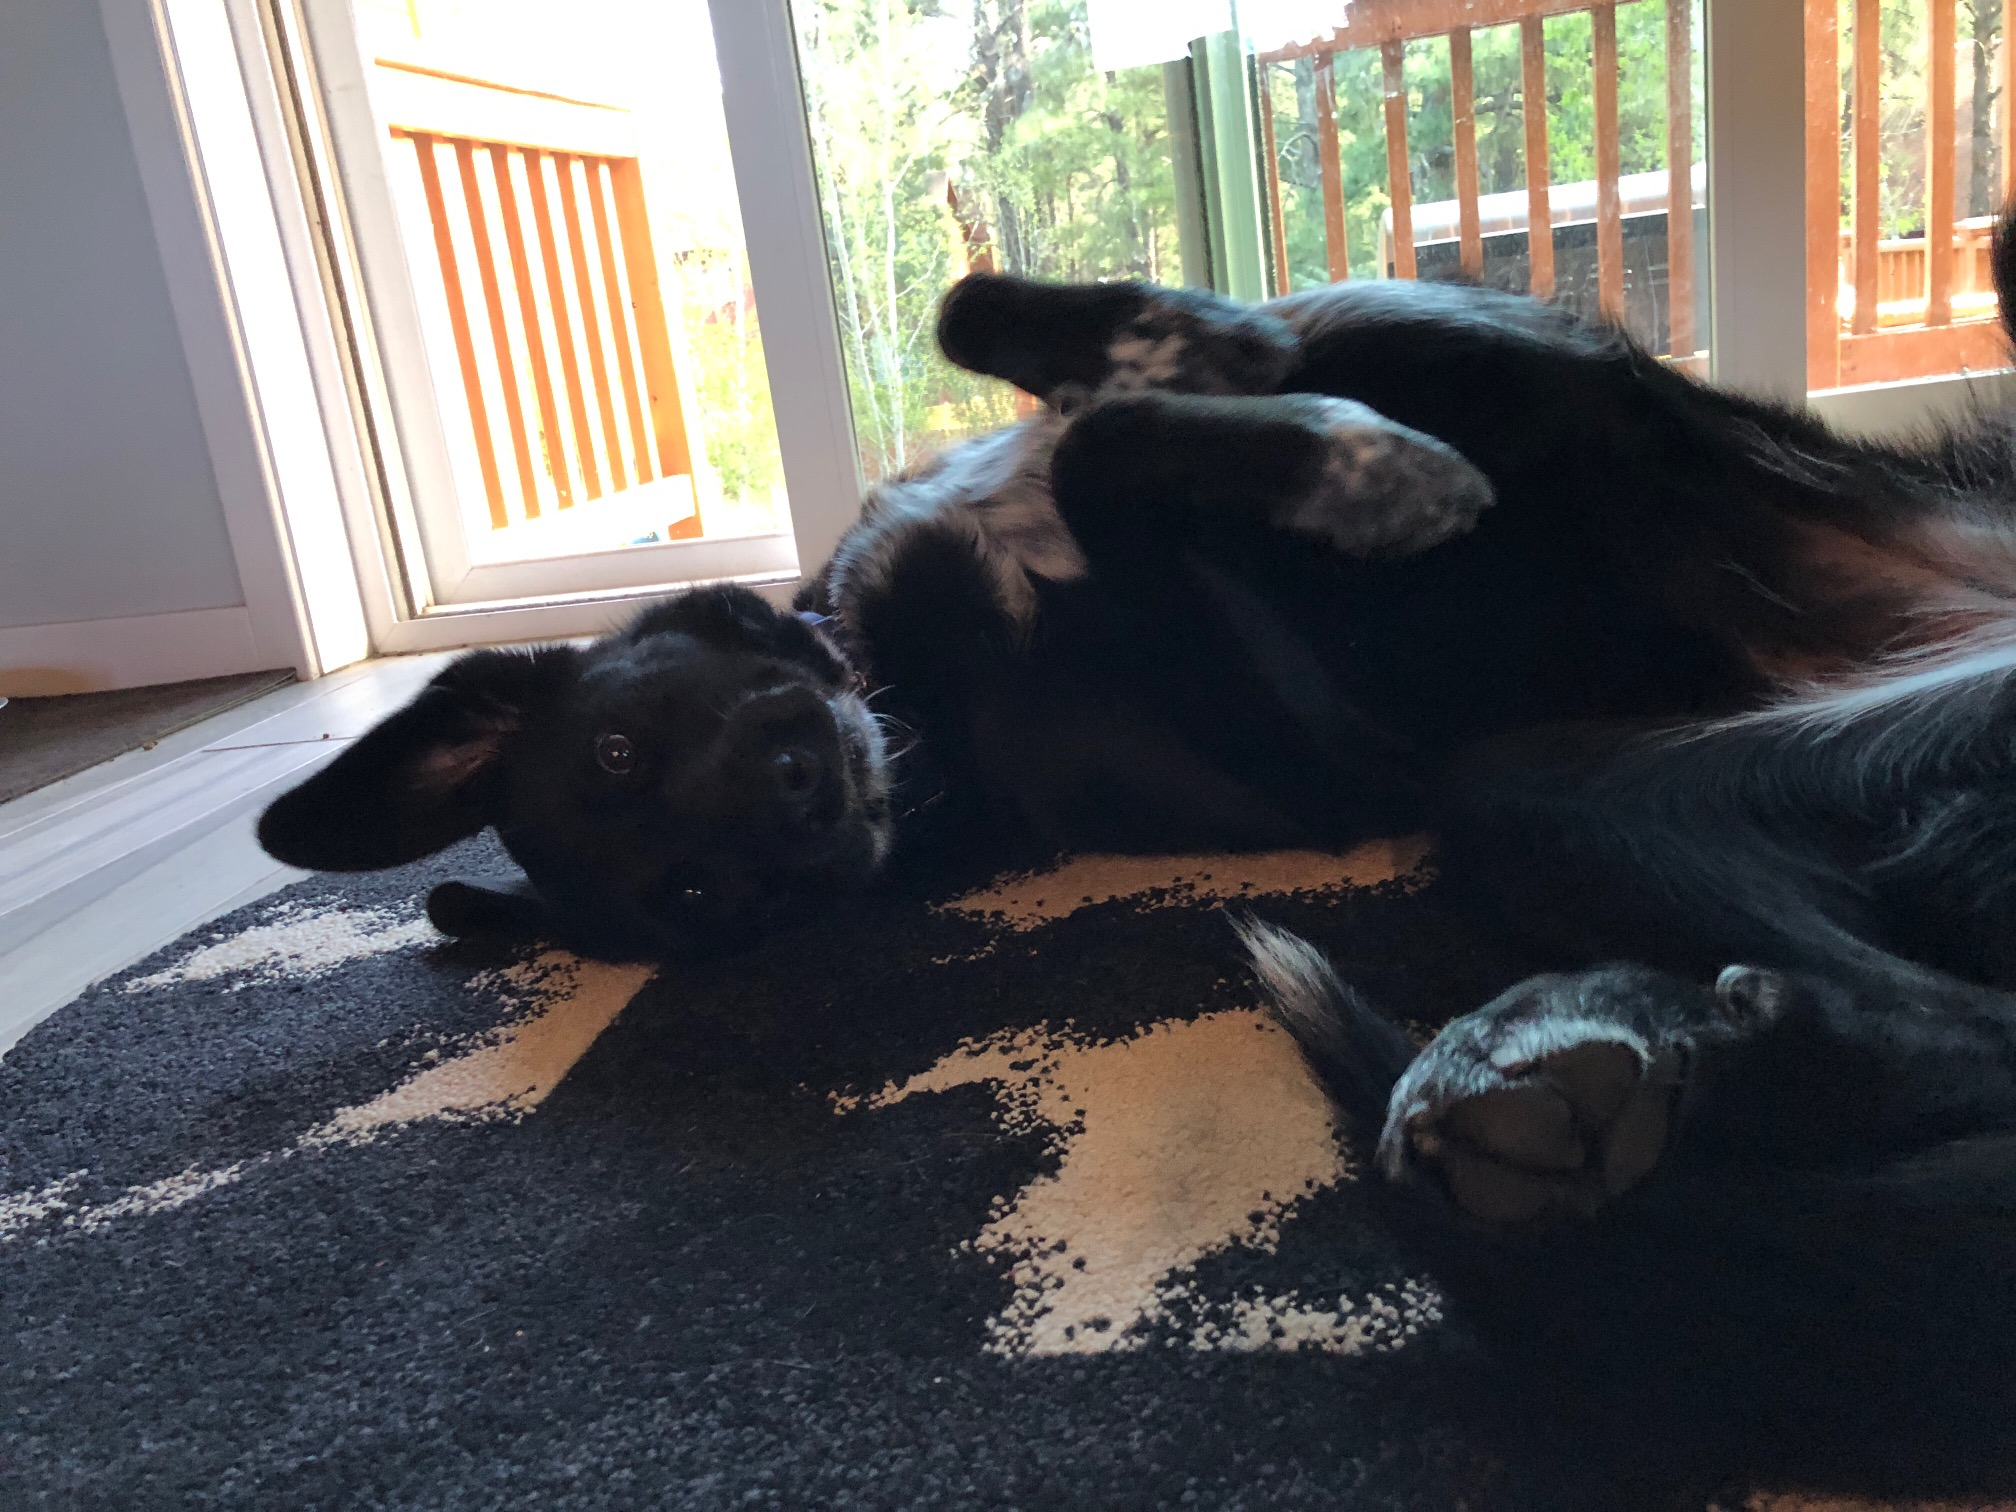 Black dog rolled in her back on a rug, with ears all floppy.